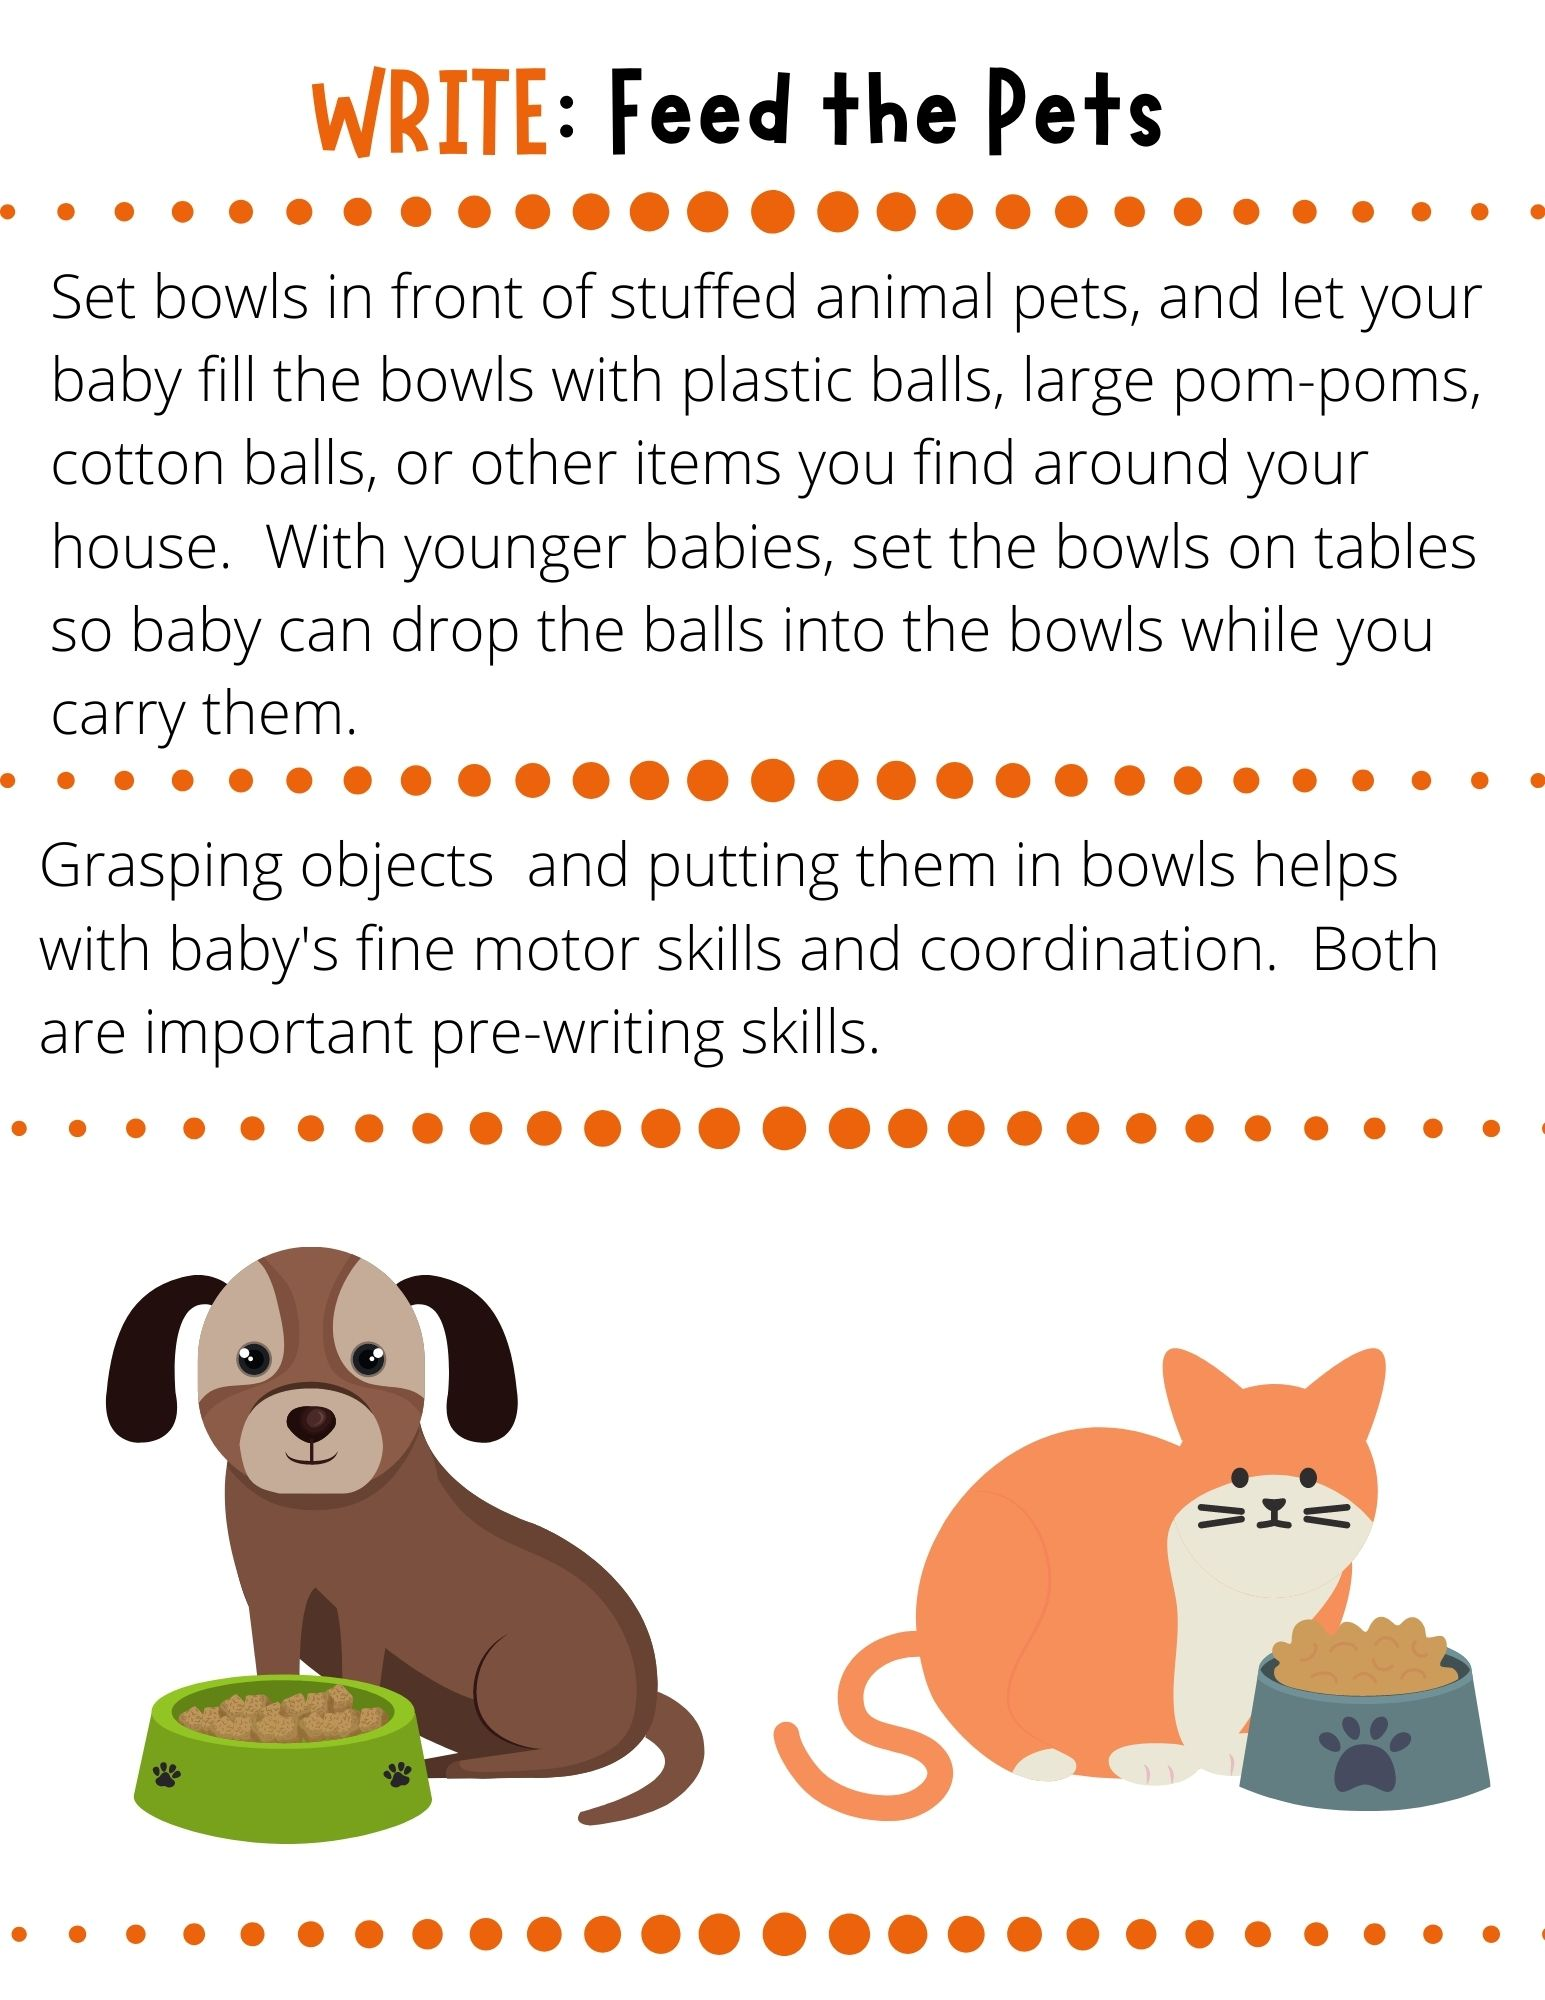 Set bowls in front of stuffed animal pets, and let your baby fill the bowls with plastic balls, large pom-poms, cotton balls, or other items you find around your house.  With younger babies, set the bowls on tables so baby can drop the balls into the bowls while you carry them.